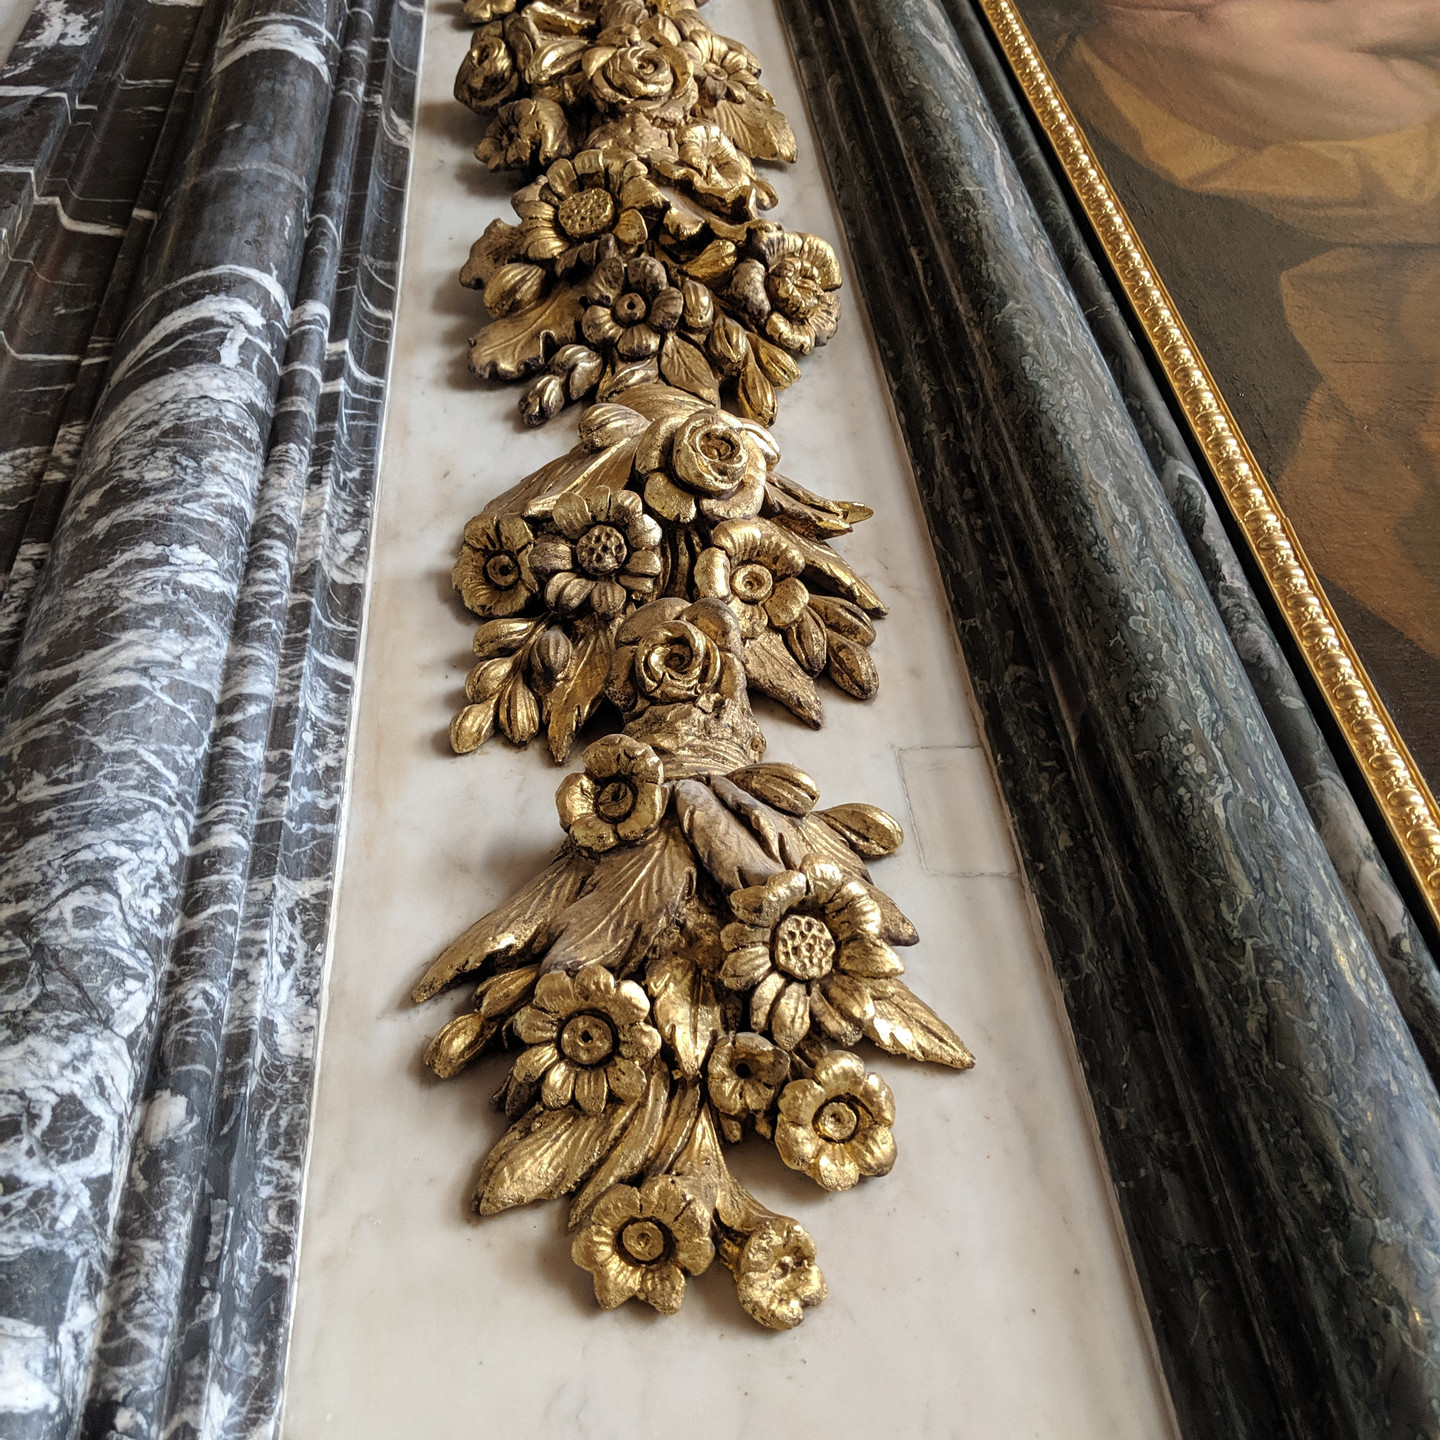 Gilded Floral Wall Carving at Versailles